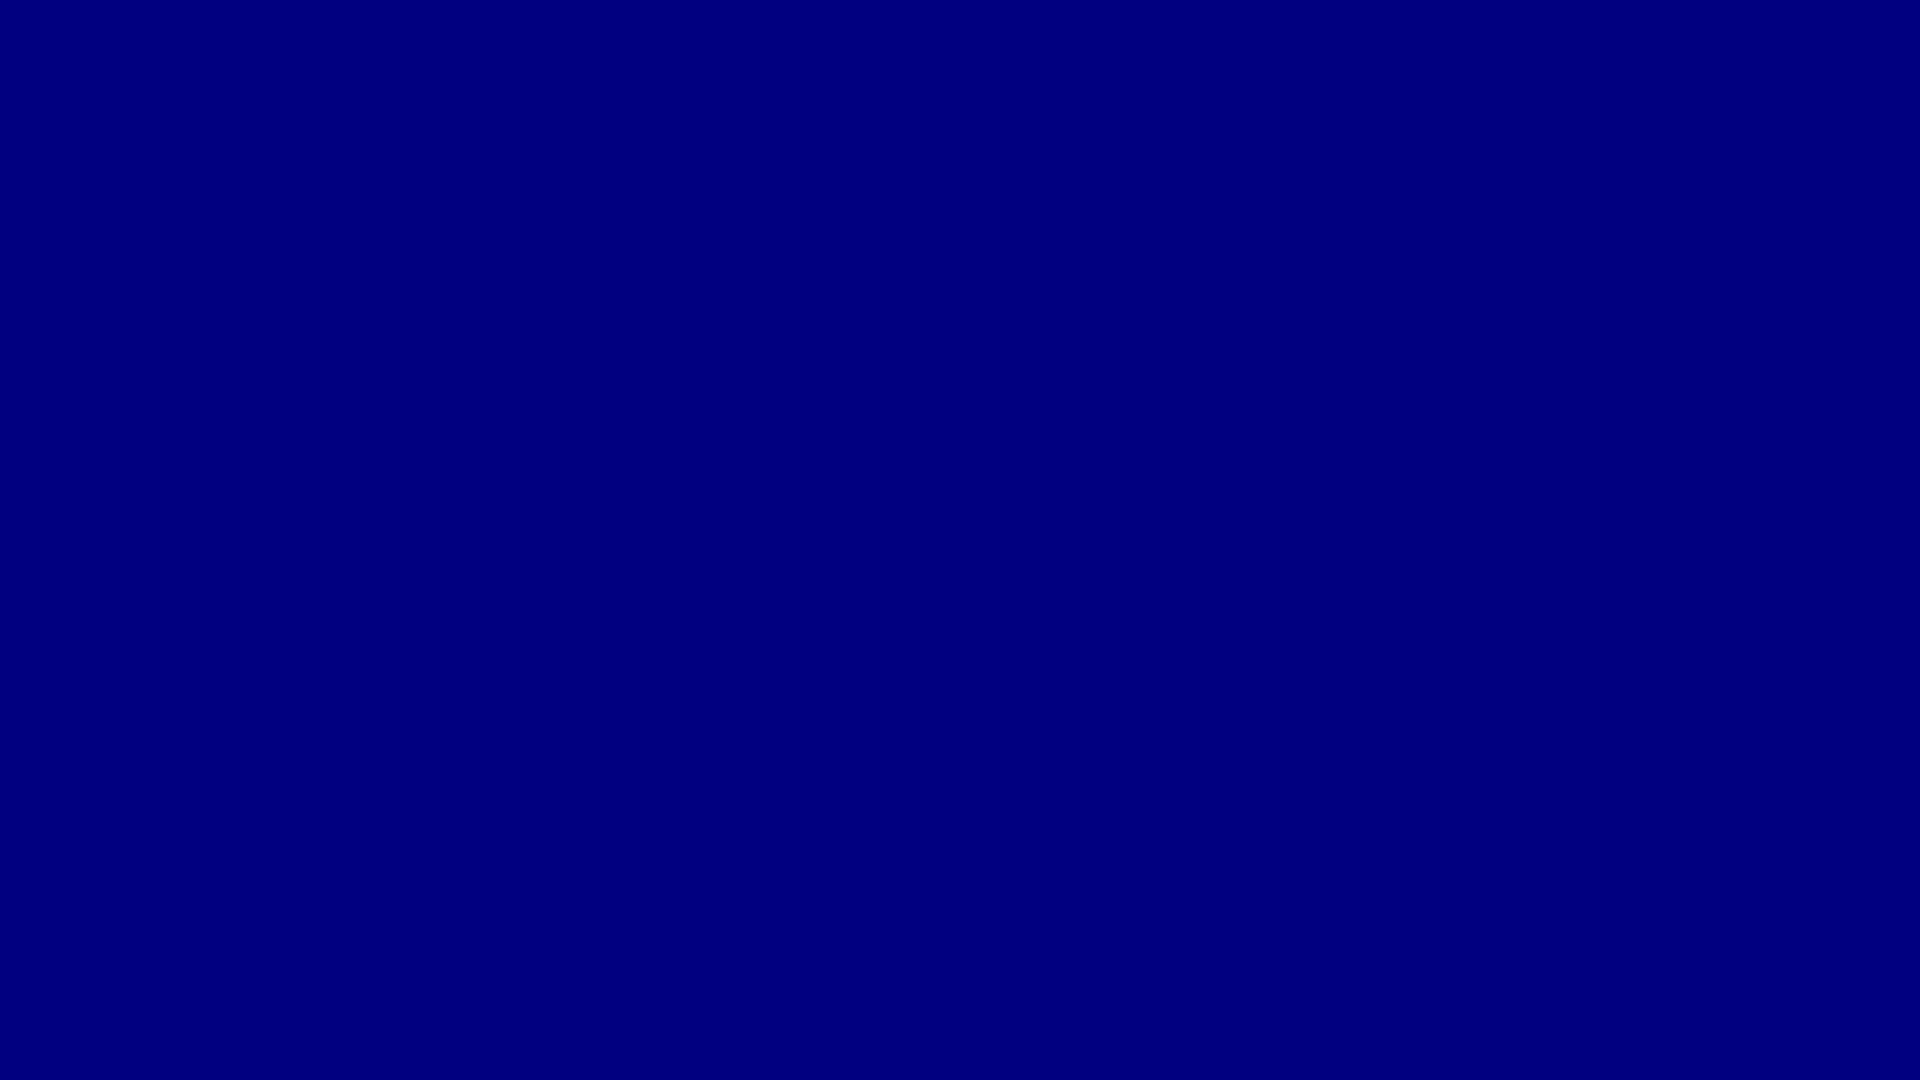 1920x1080 Navy Blue Solid Color Background 1920x1080